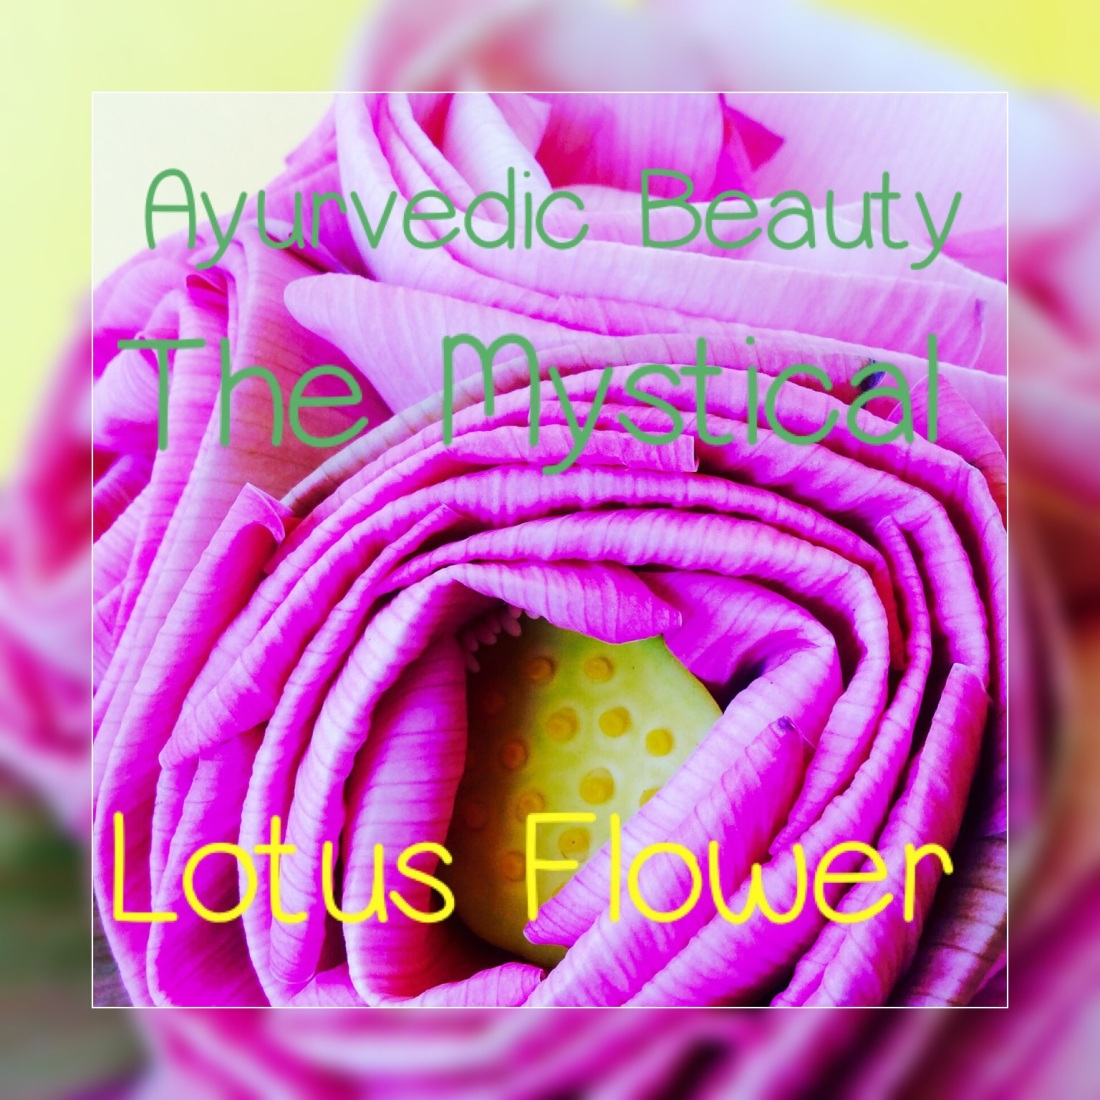 Ayurvedic Beauty The Mystical Lotus Flower Frances Natural